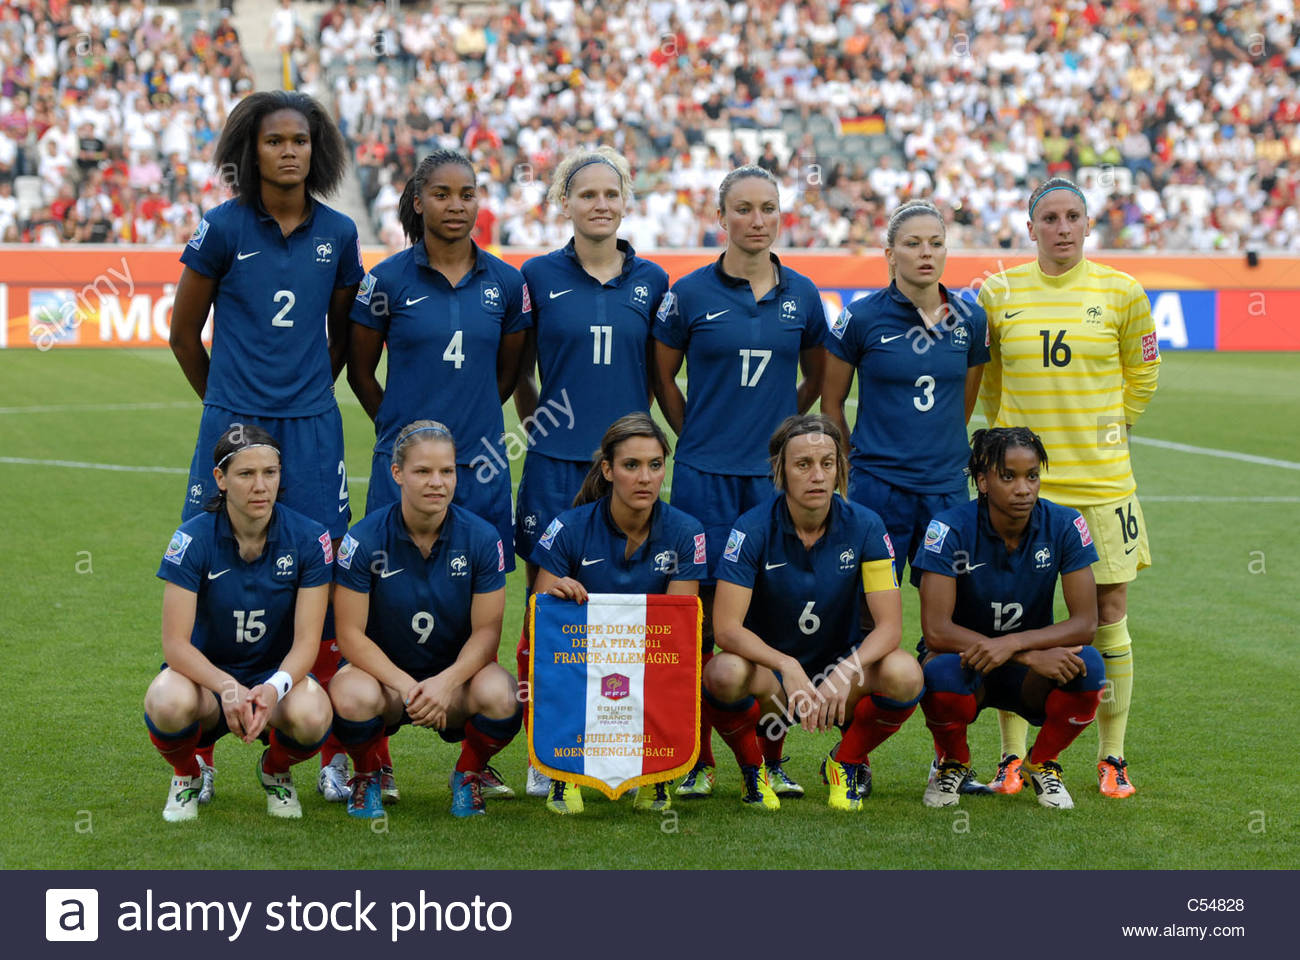 Football - Womens World Cup Germany vs France 5-7-2011 ...